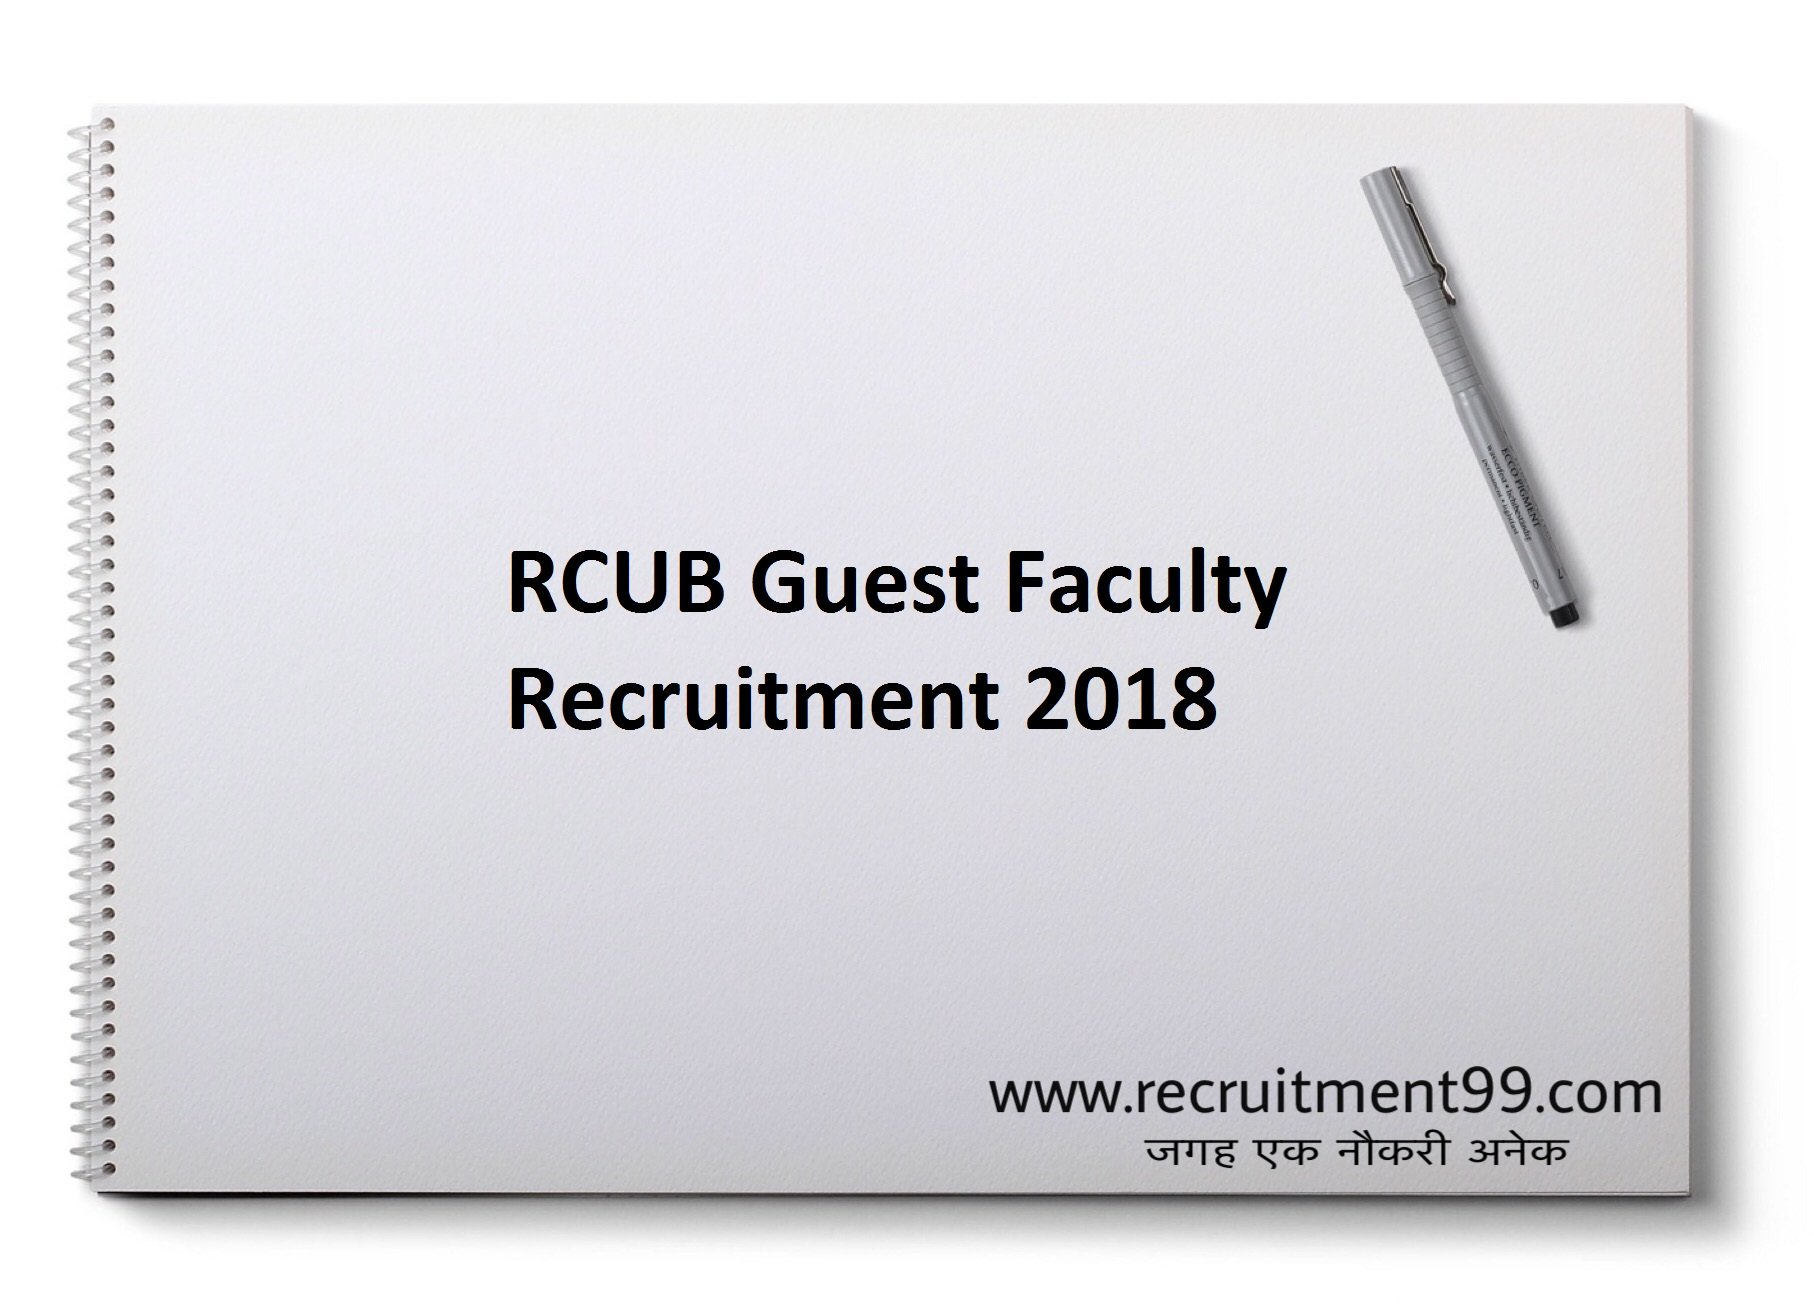 RCUB Guest Faculty Recruitment Admit Card Result 2018